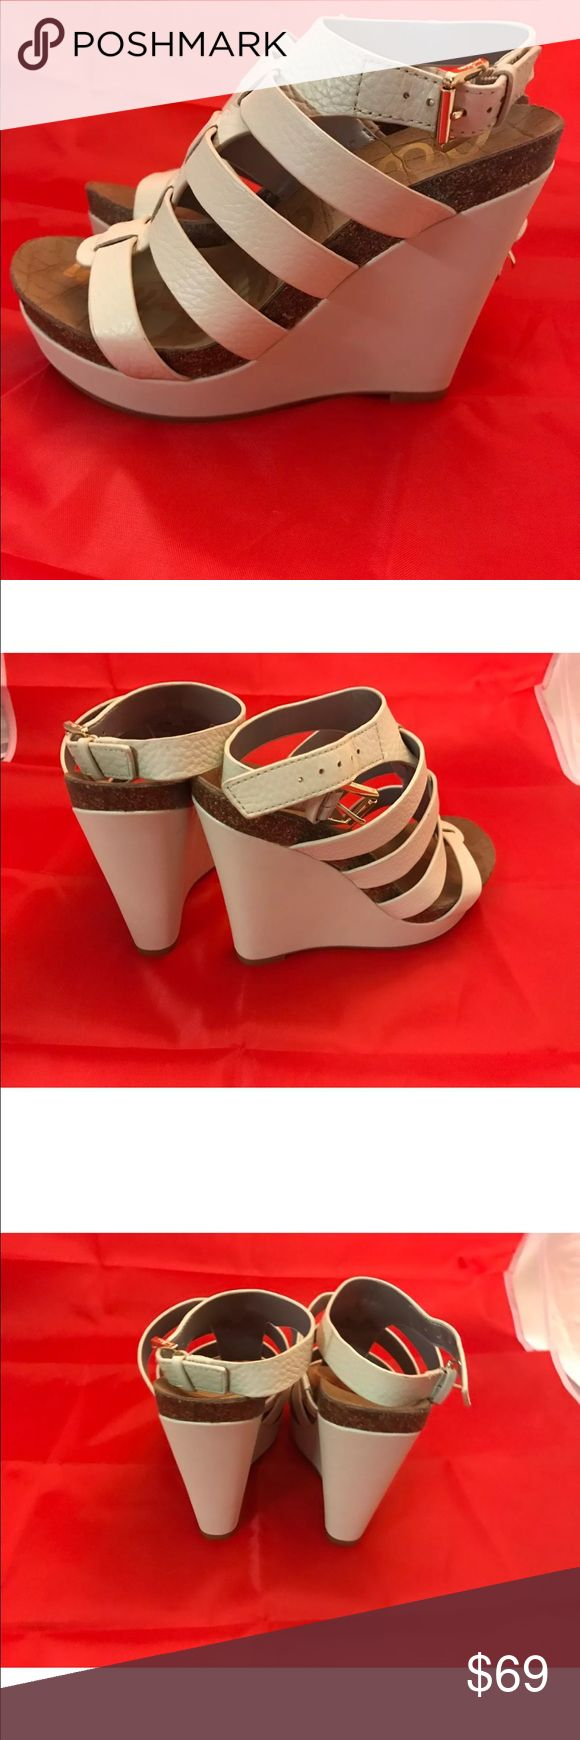 SAM EDELMAN LEATHER WHITE WEDGE SANDALS SIZE 6.5 BRAND NEW SAM EDELMAN LEATHER WHITE WEDGE SANDALS SIZE 6.5 NEW WITHOUT BOX CUTE FOR VALENTINE'S DAY DATE! Sam Edelman Shoes Sandals